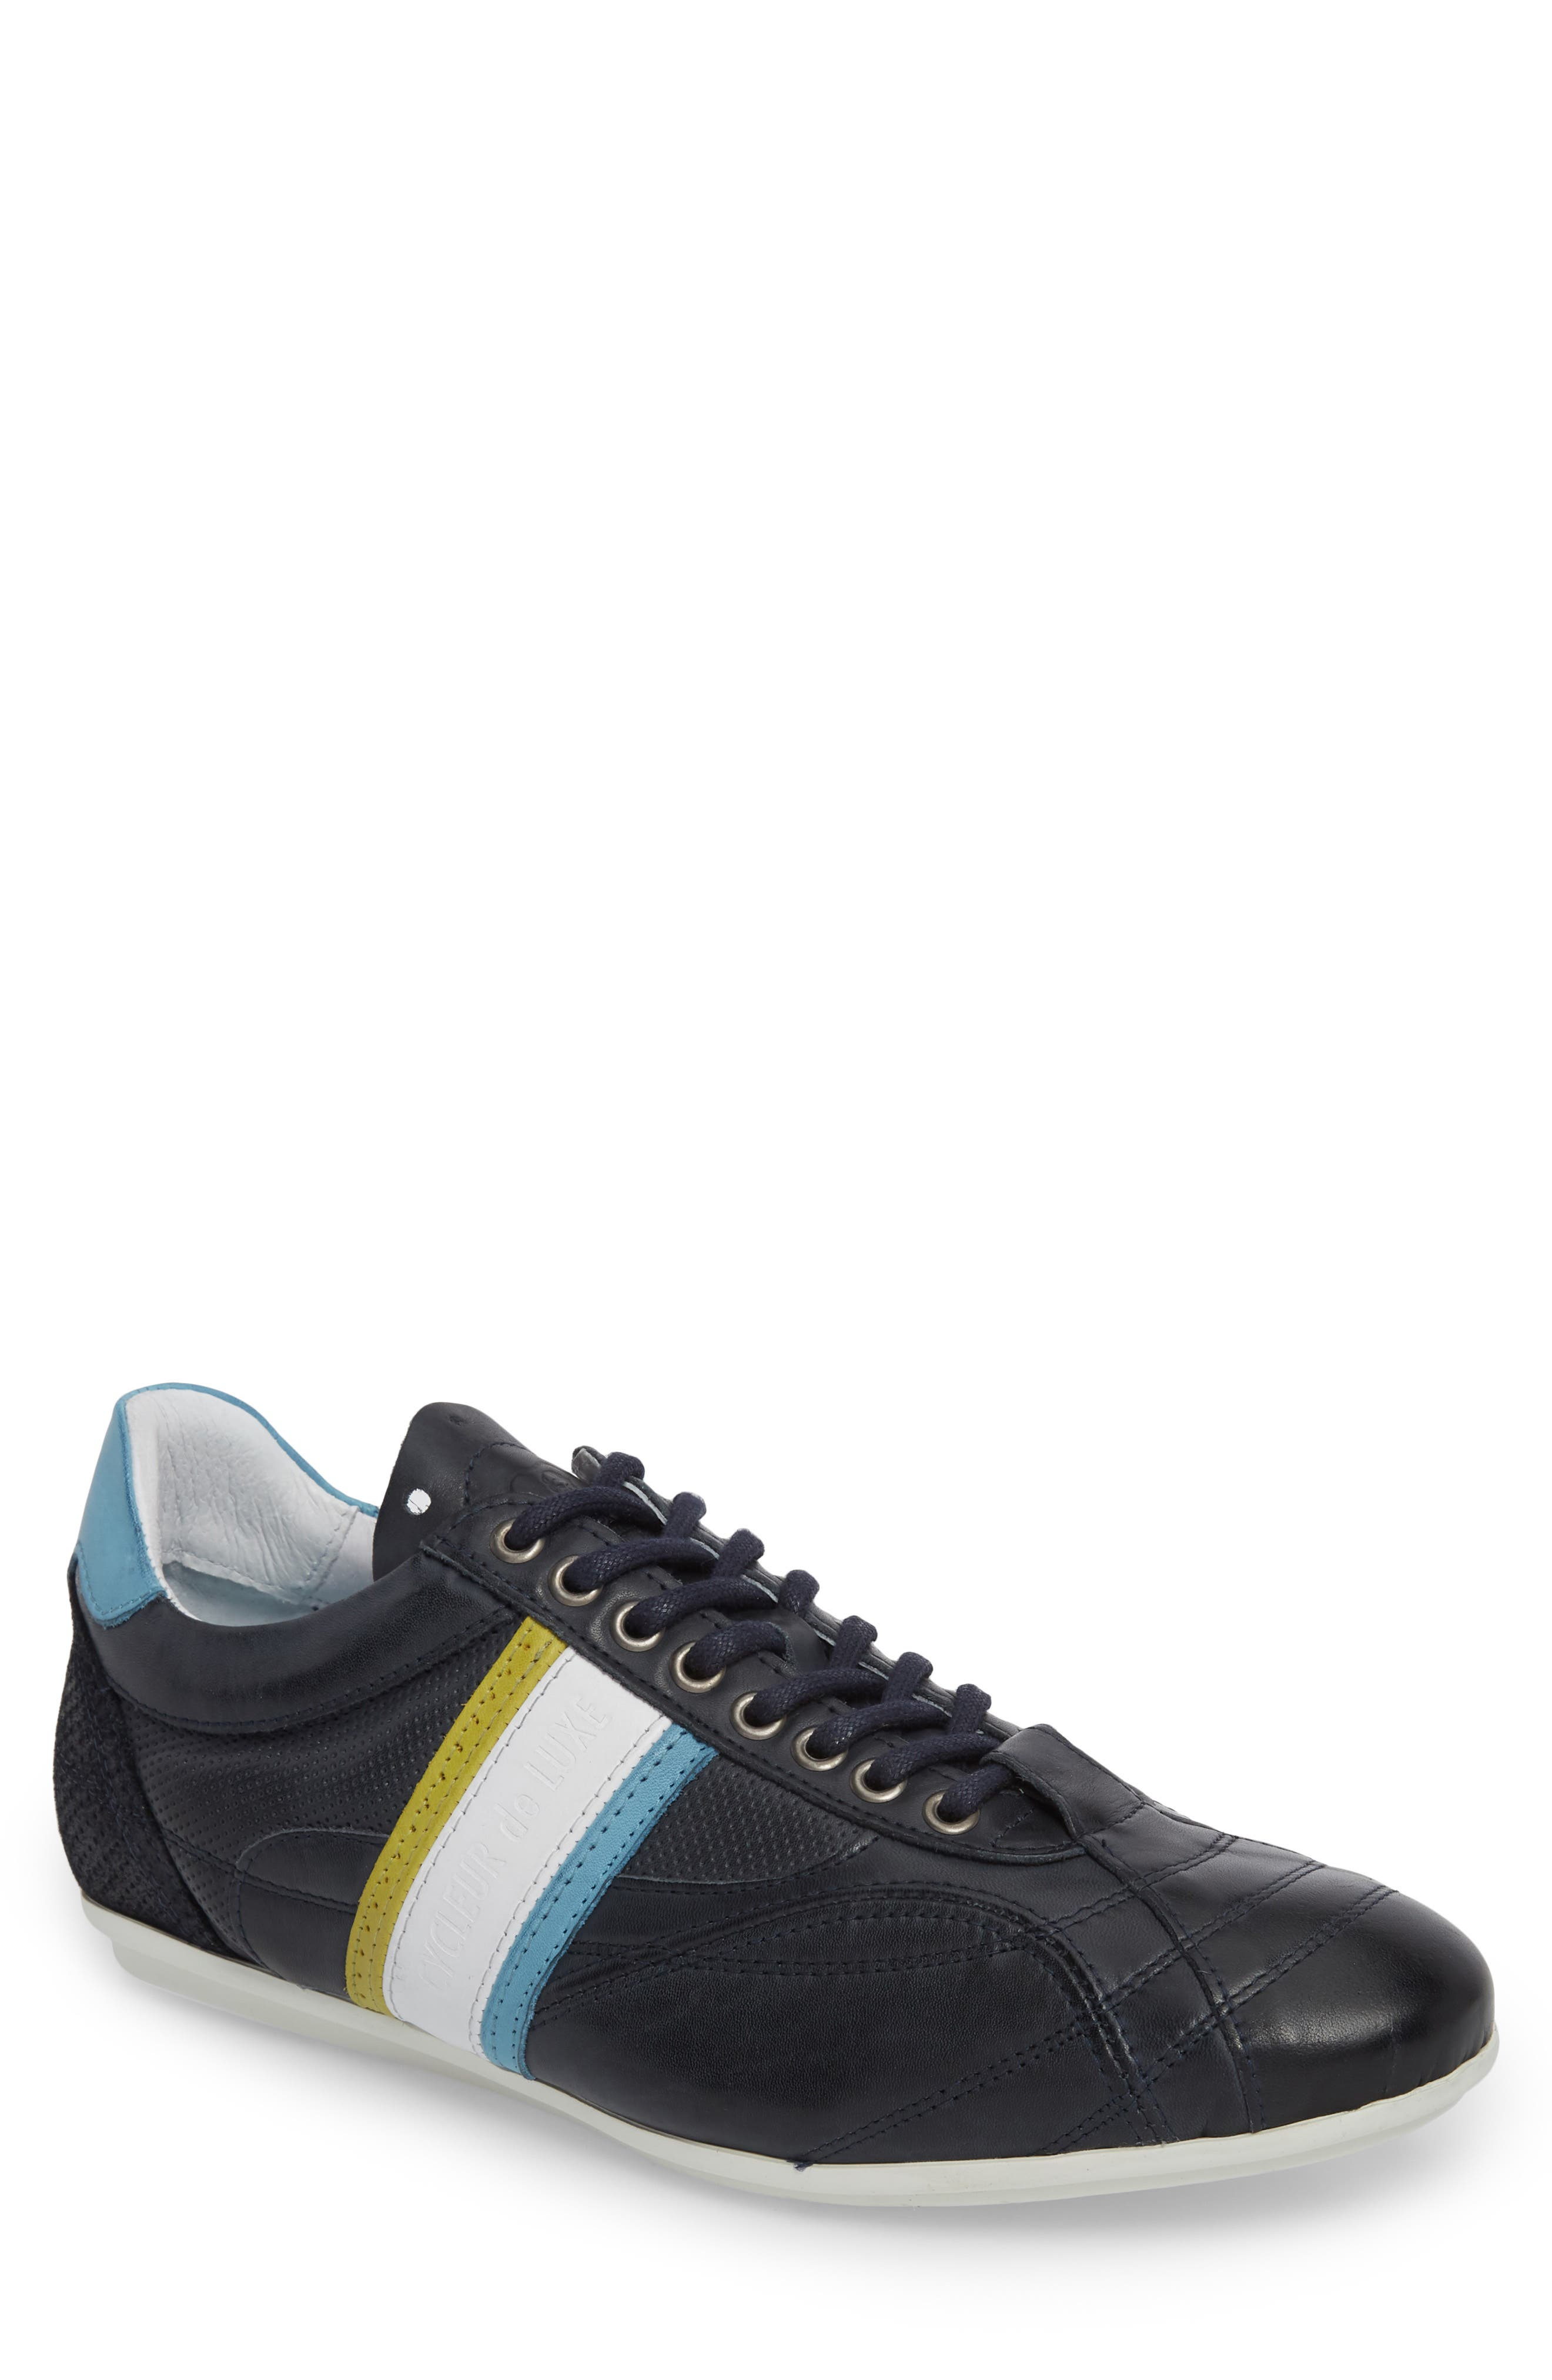 Crush City Low Top Sneaker,                         Main,                         color, NAVY LEATHER